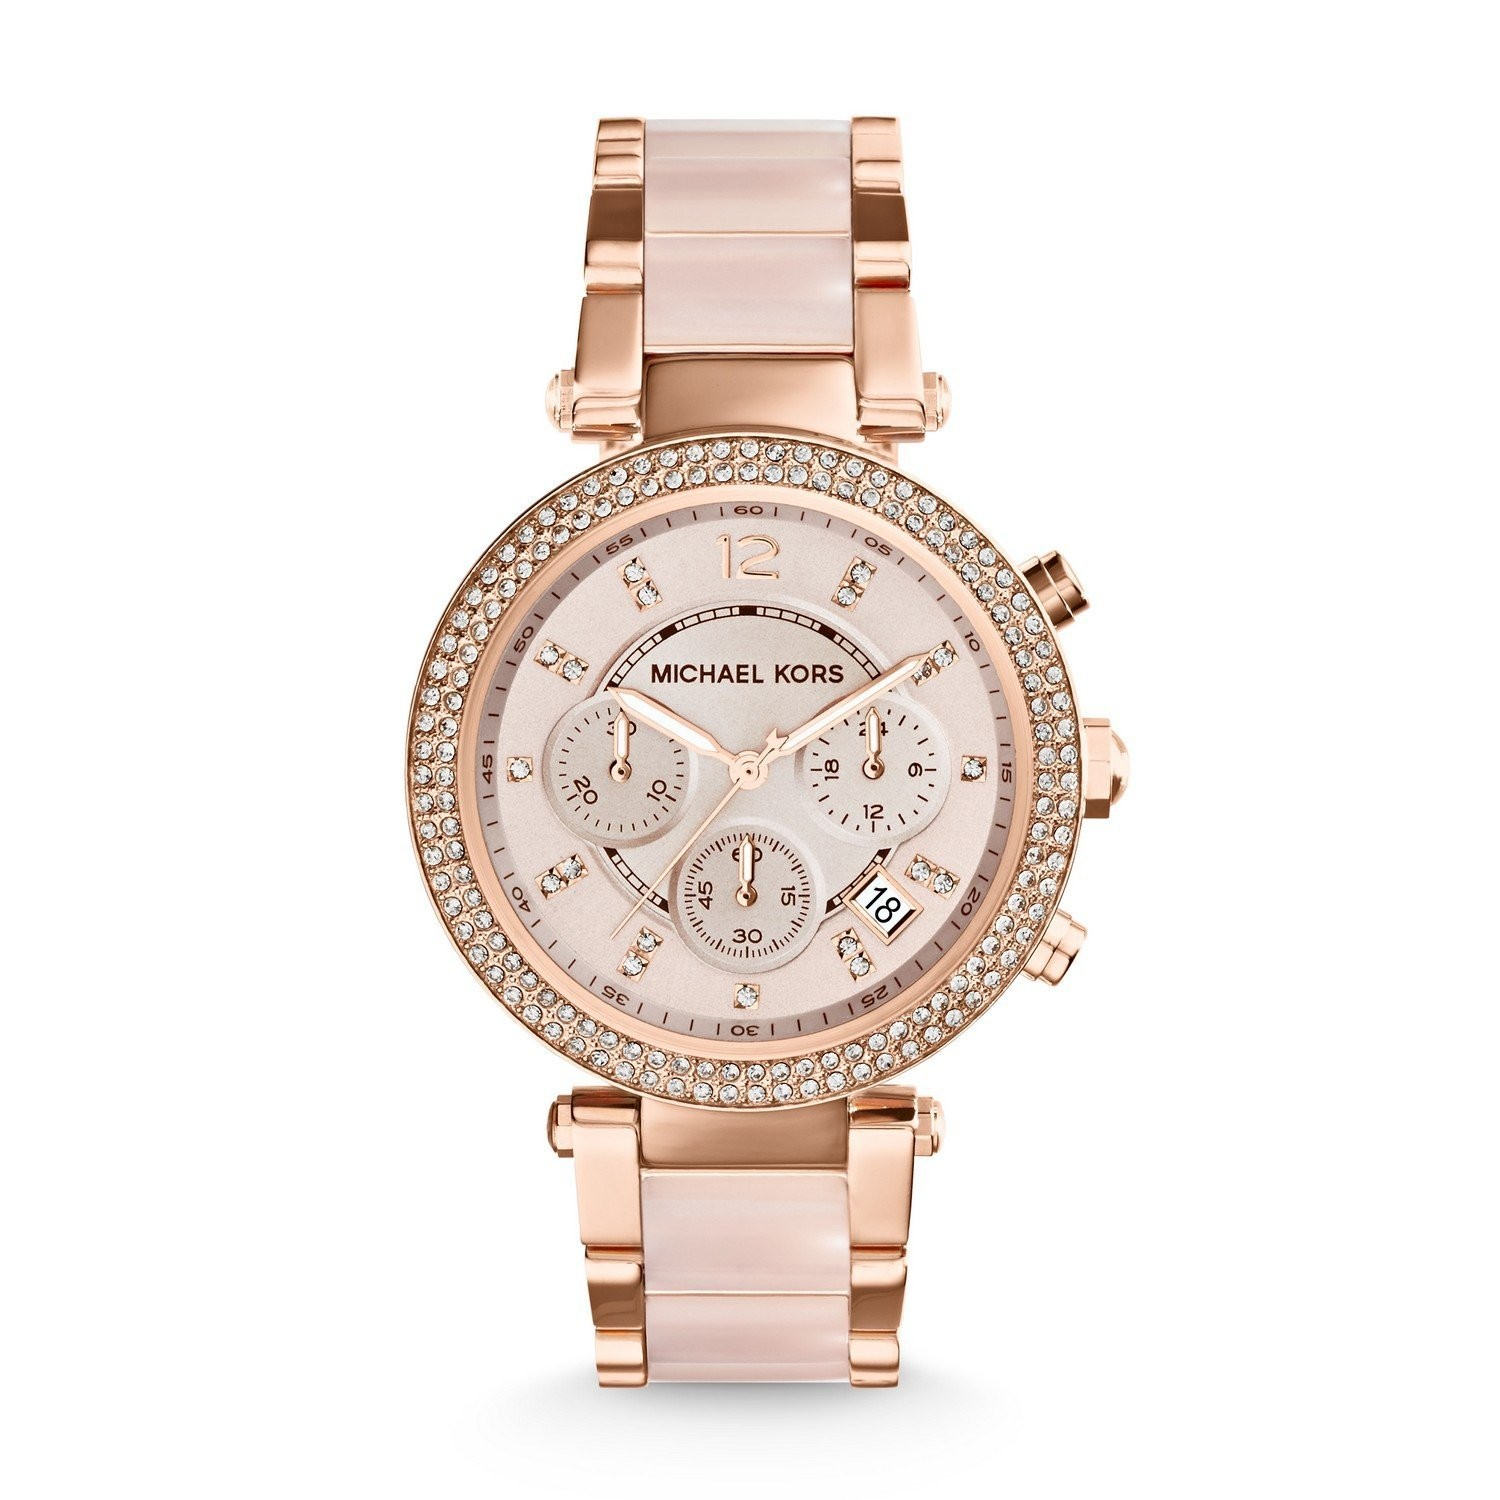 Michael Kors Watches Parker Women's Watch MK5896